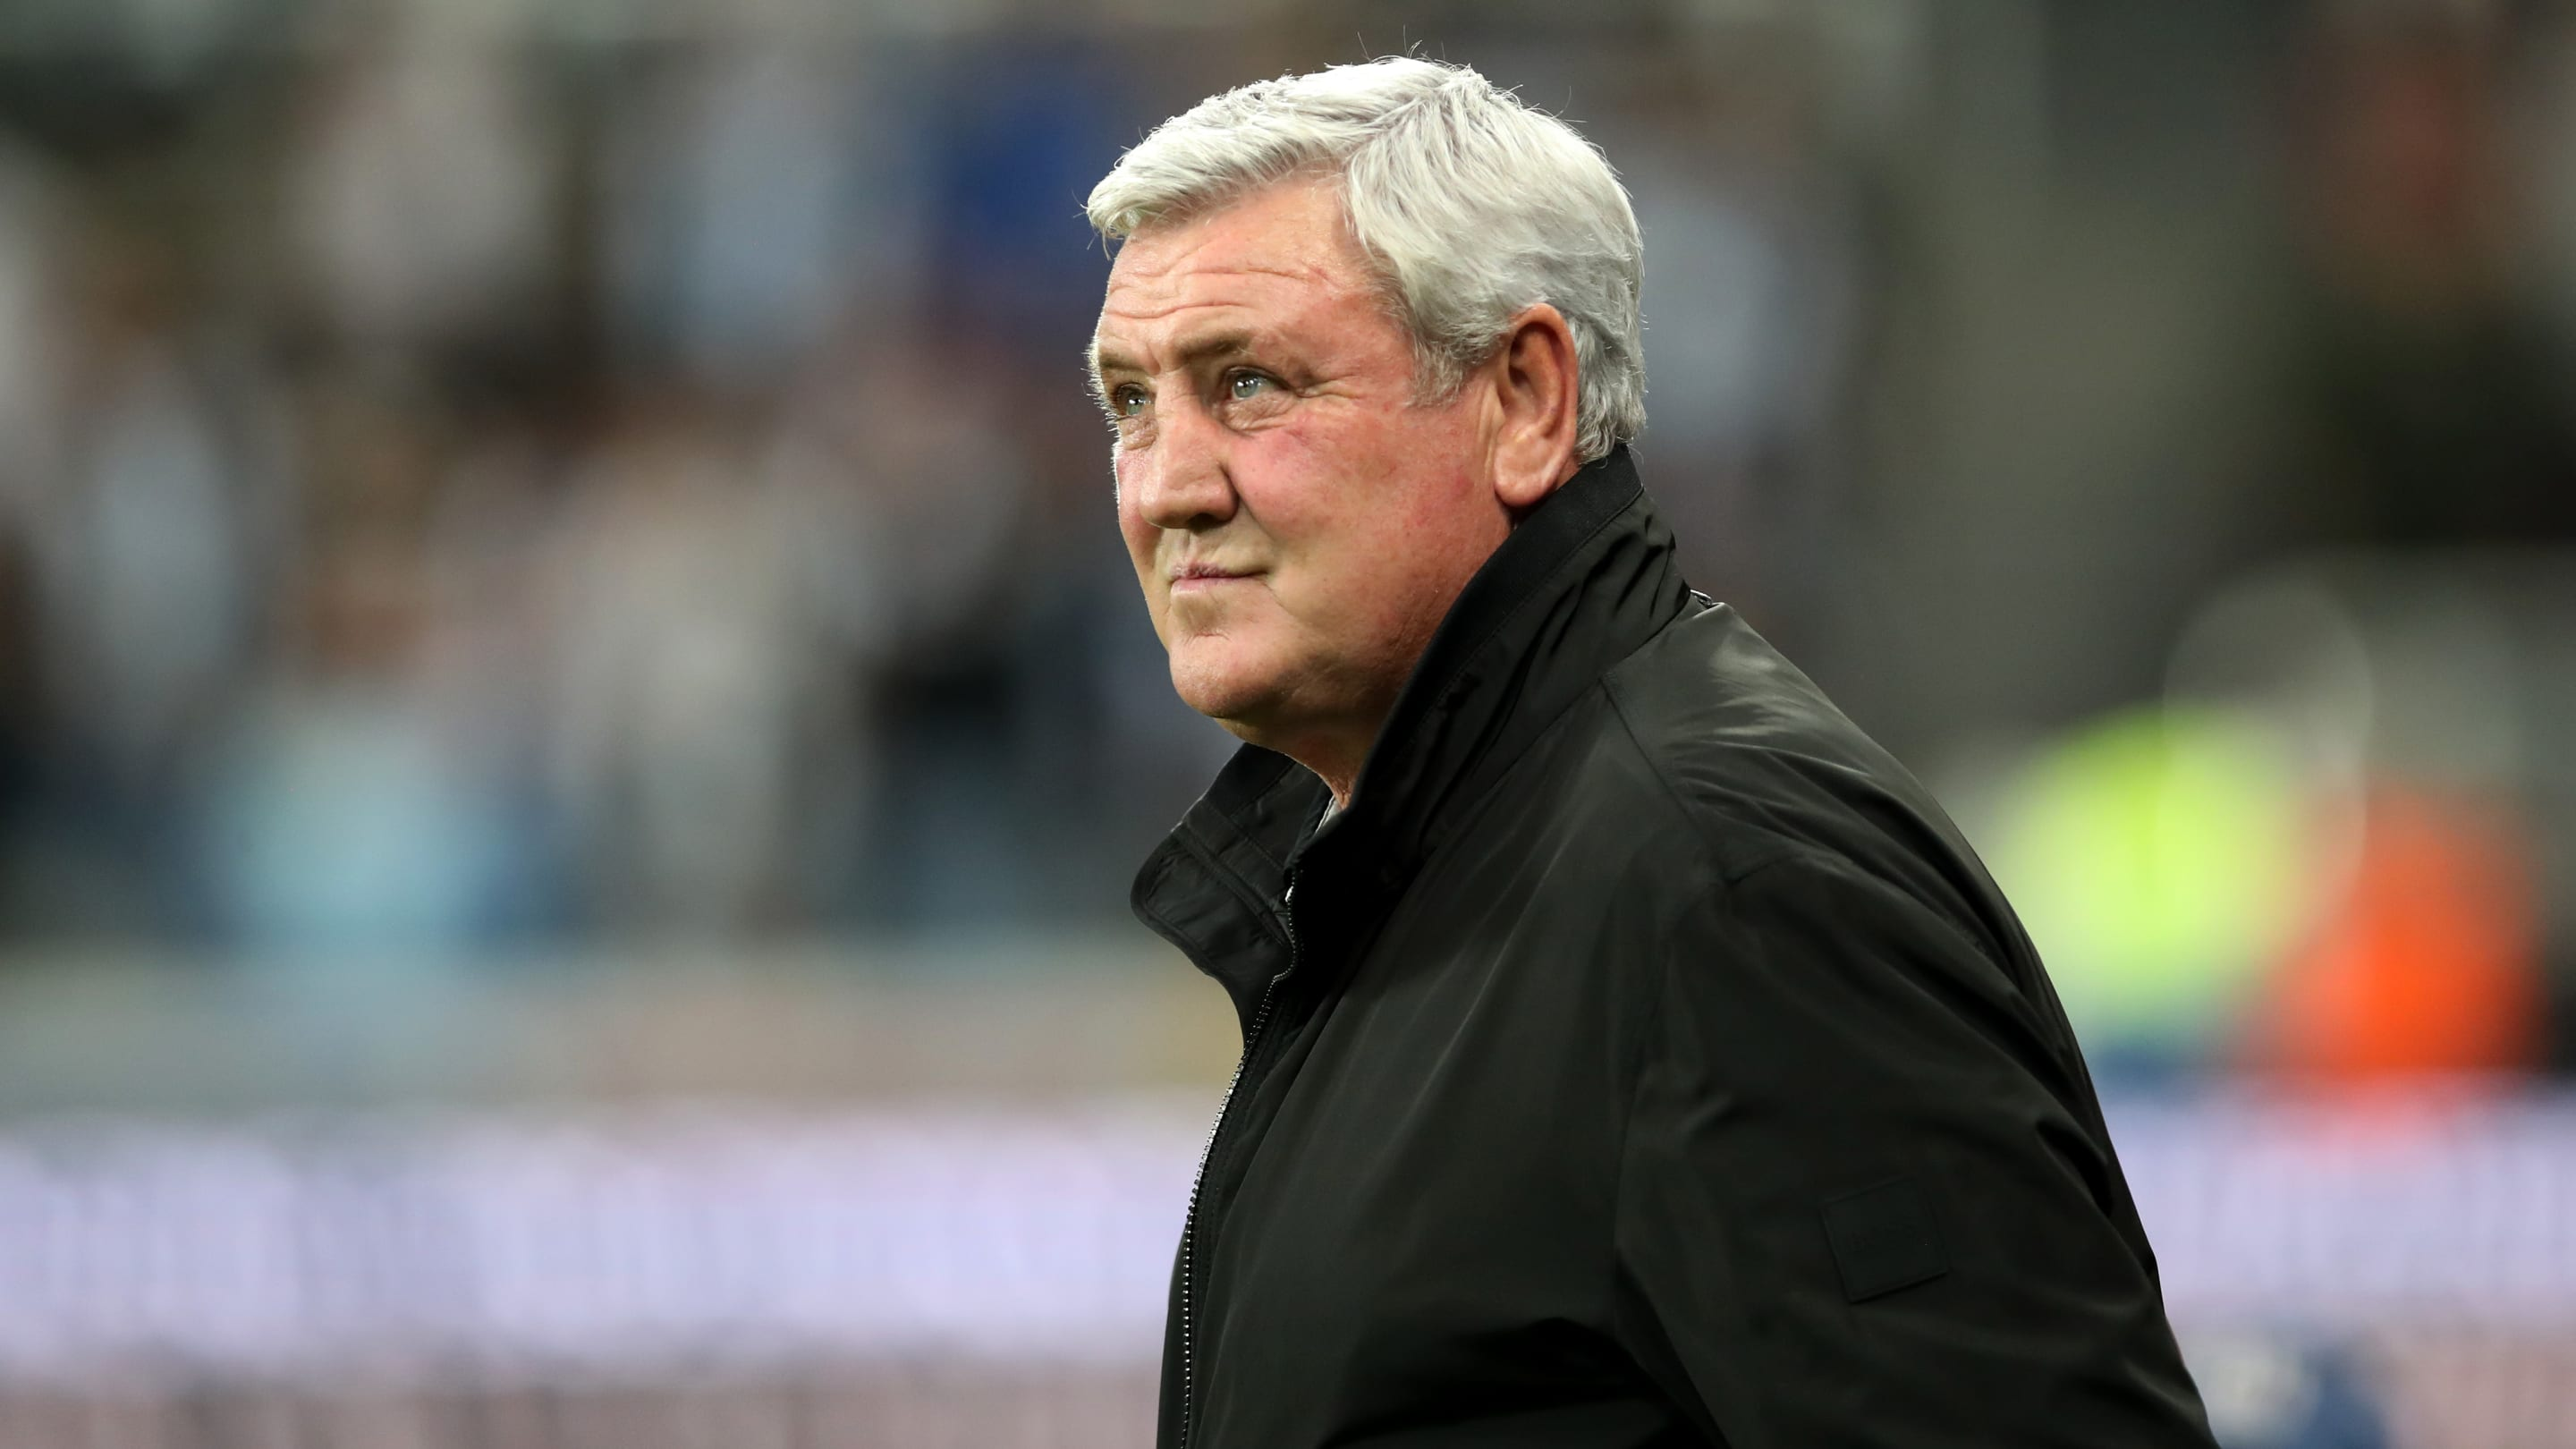 Every supervisor linked with the Newcastle job following takeover thumbnail